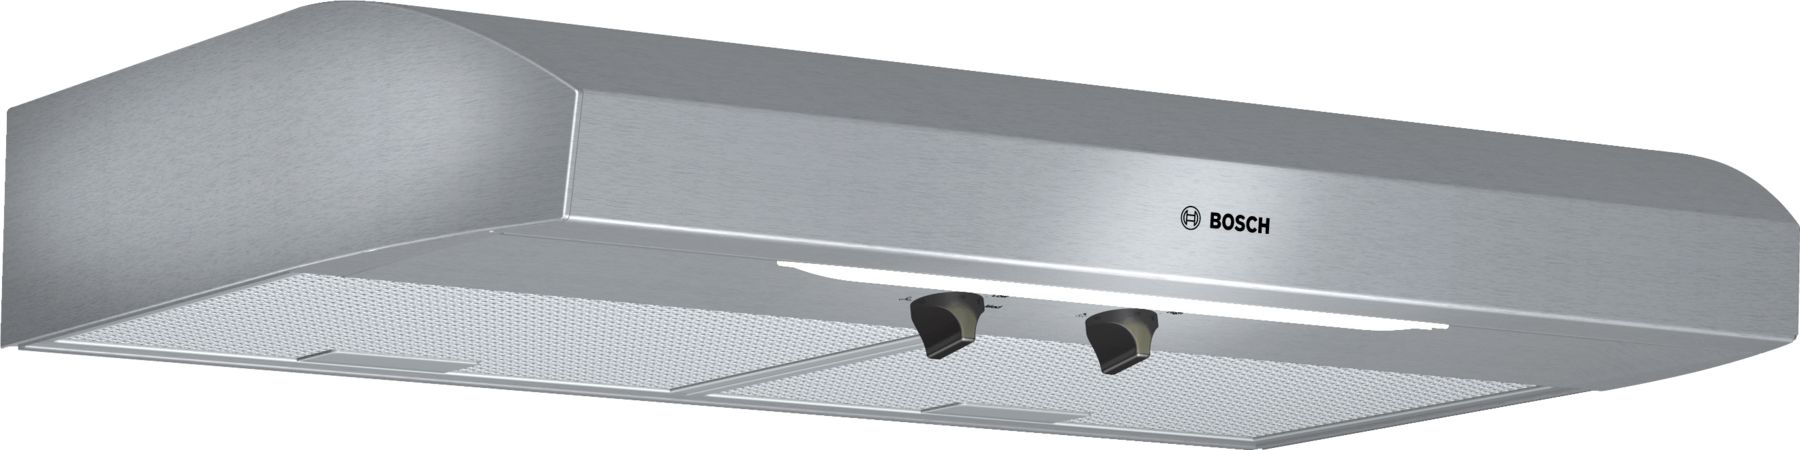 "Model: DUH30152UC | Bosch 300 Series30"" Under-cabinet Hood, 280 CFM, DUH30152UC, Stainless Steel"